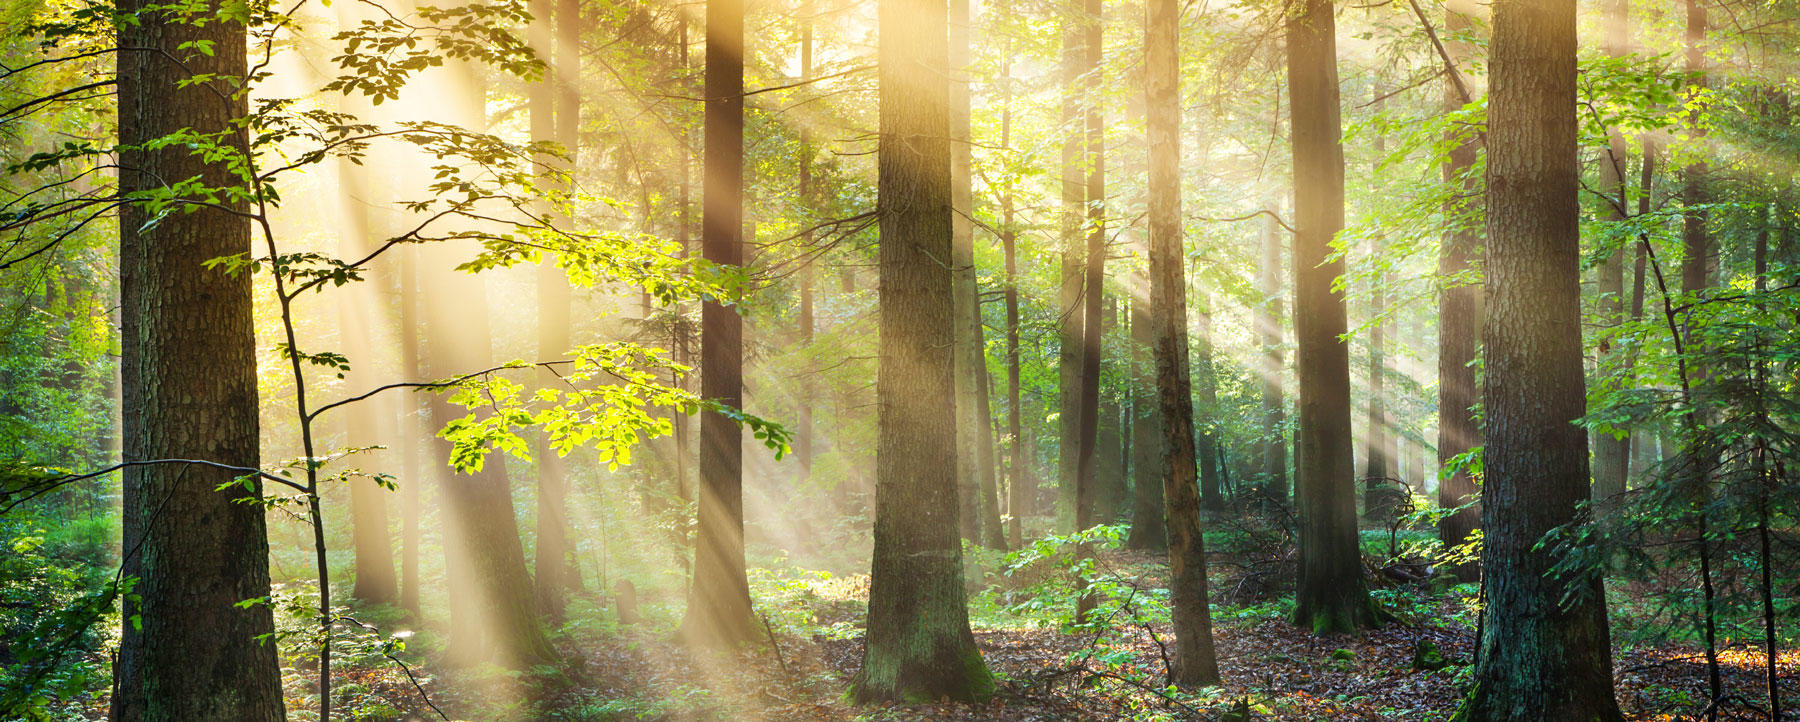 Forest and rays of sunshine